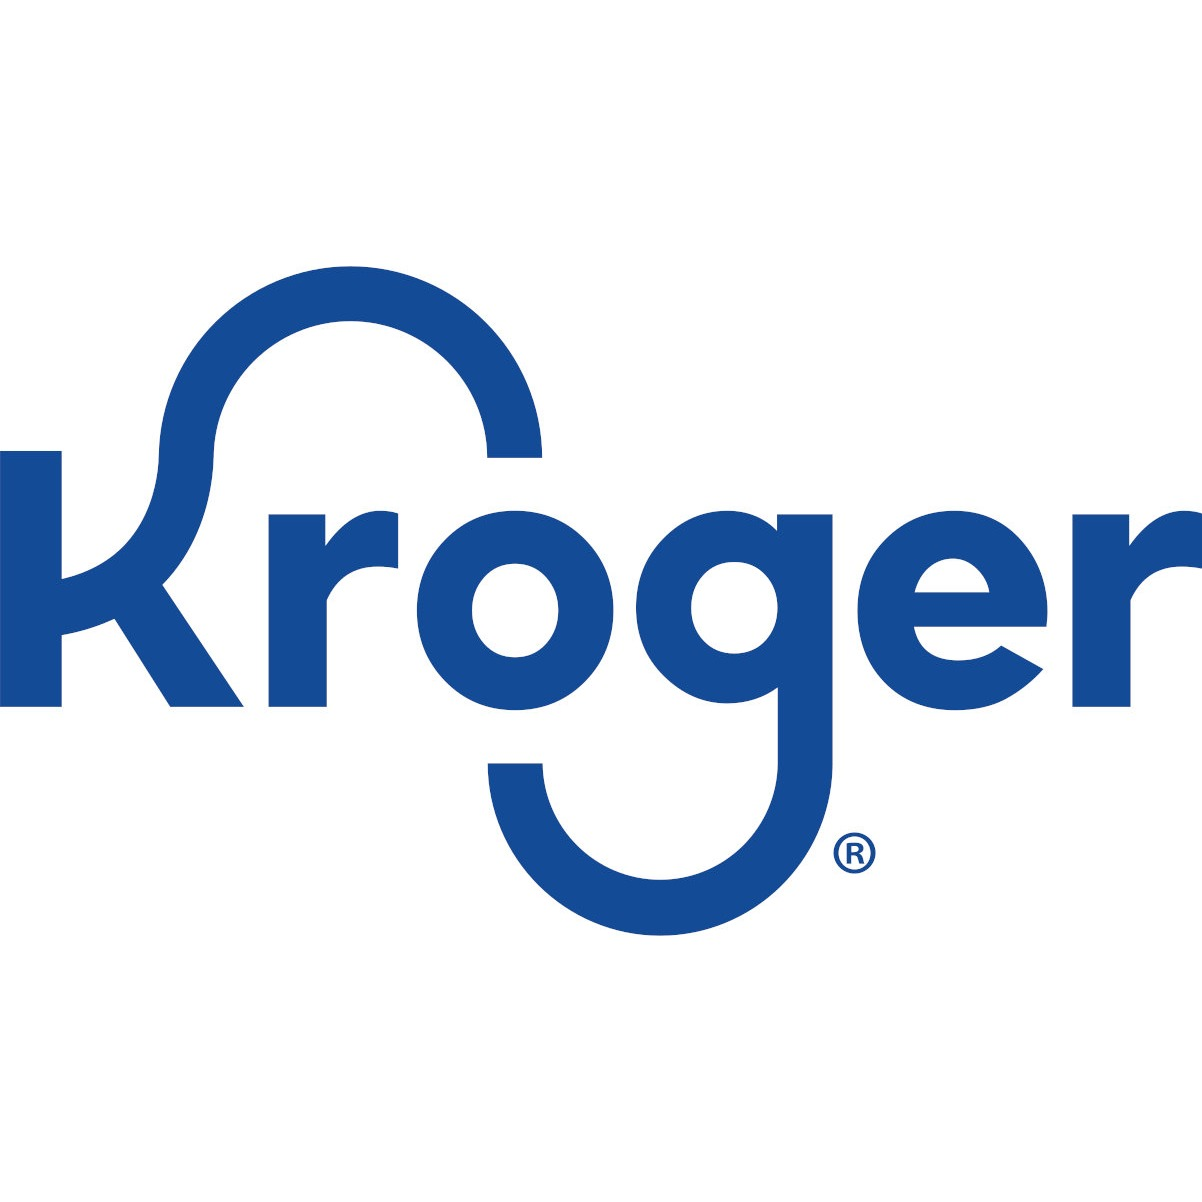 Kroger - Closed